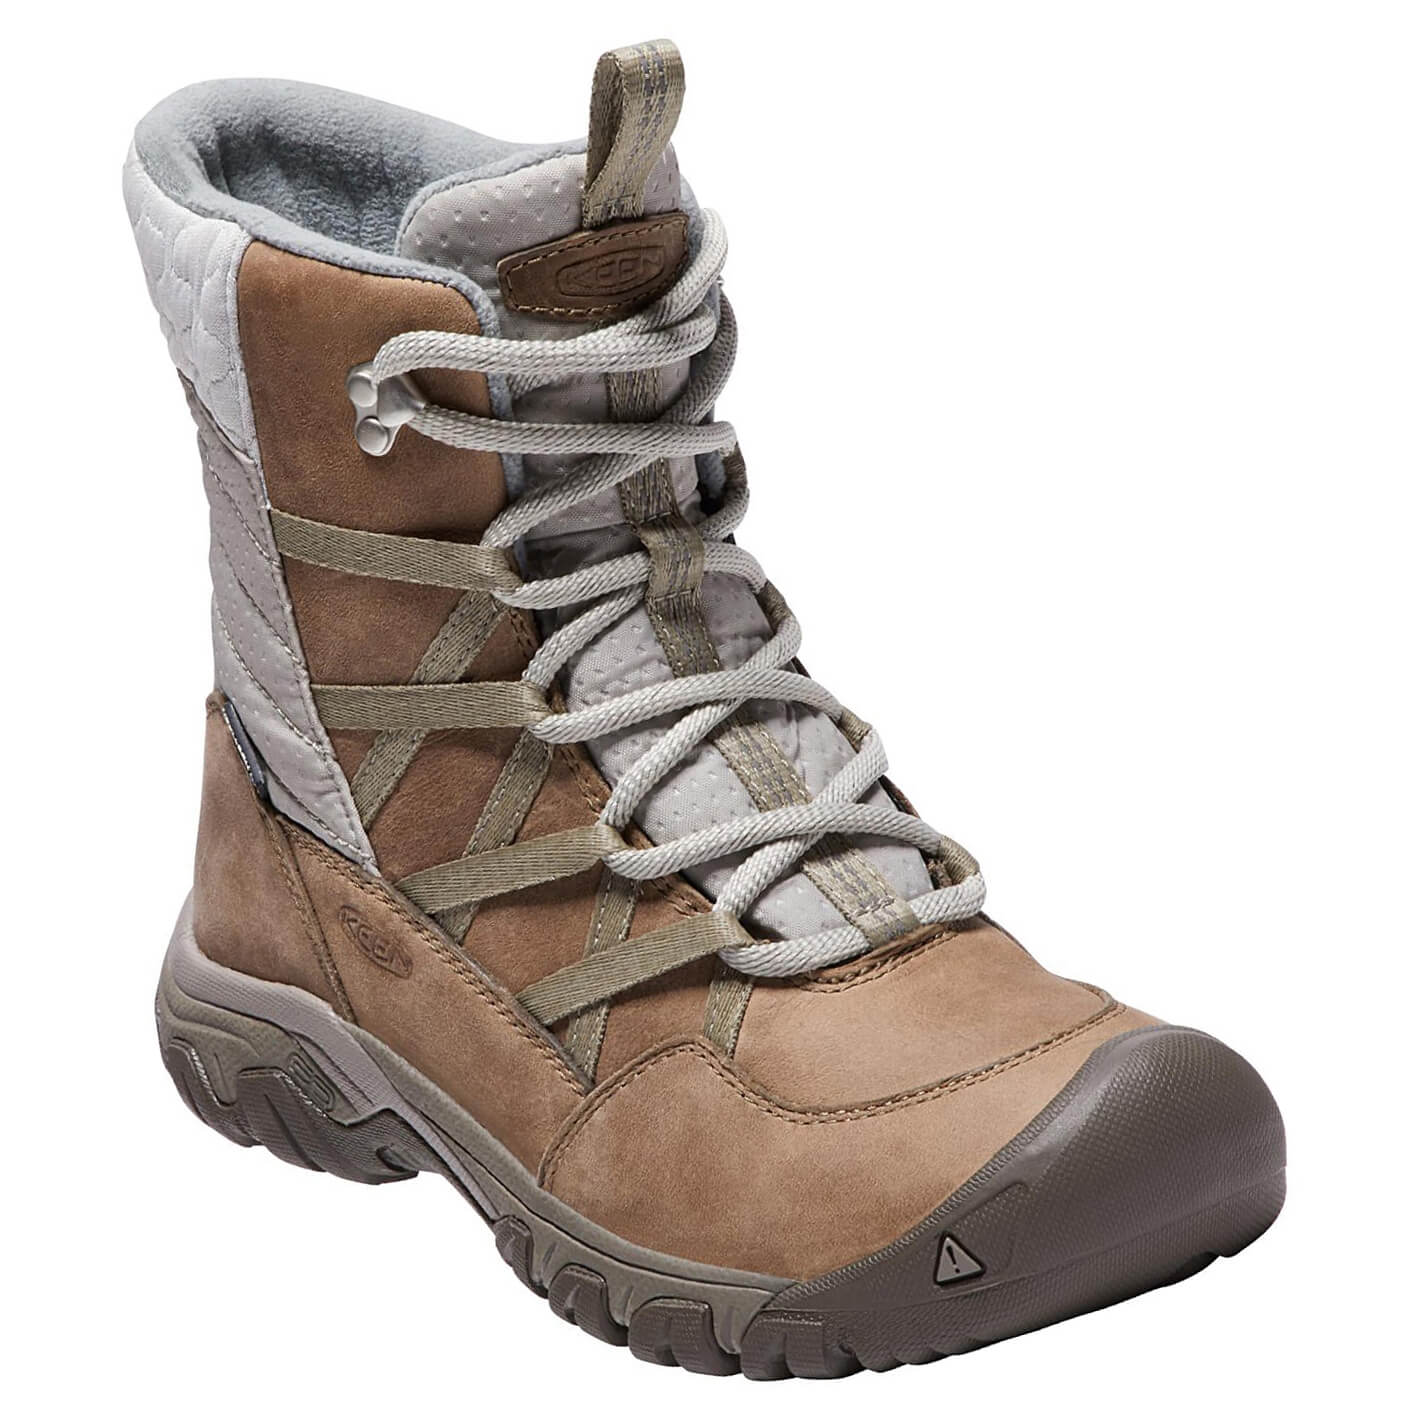 Keen Hoodoo III Lace Up - Winter boots Women's | Buy